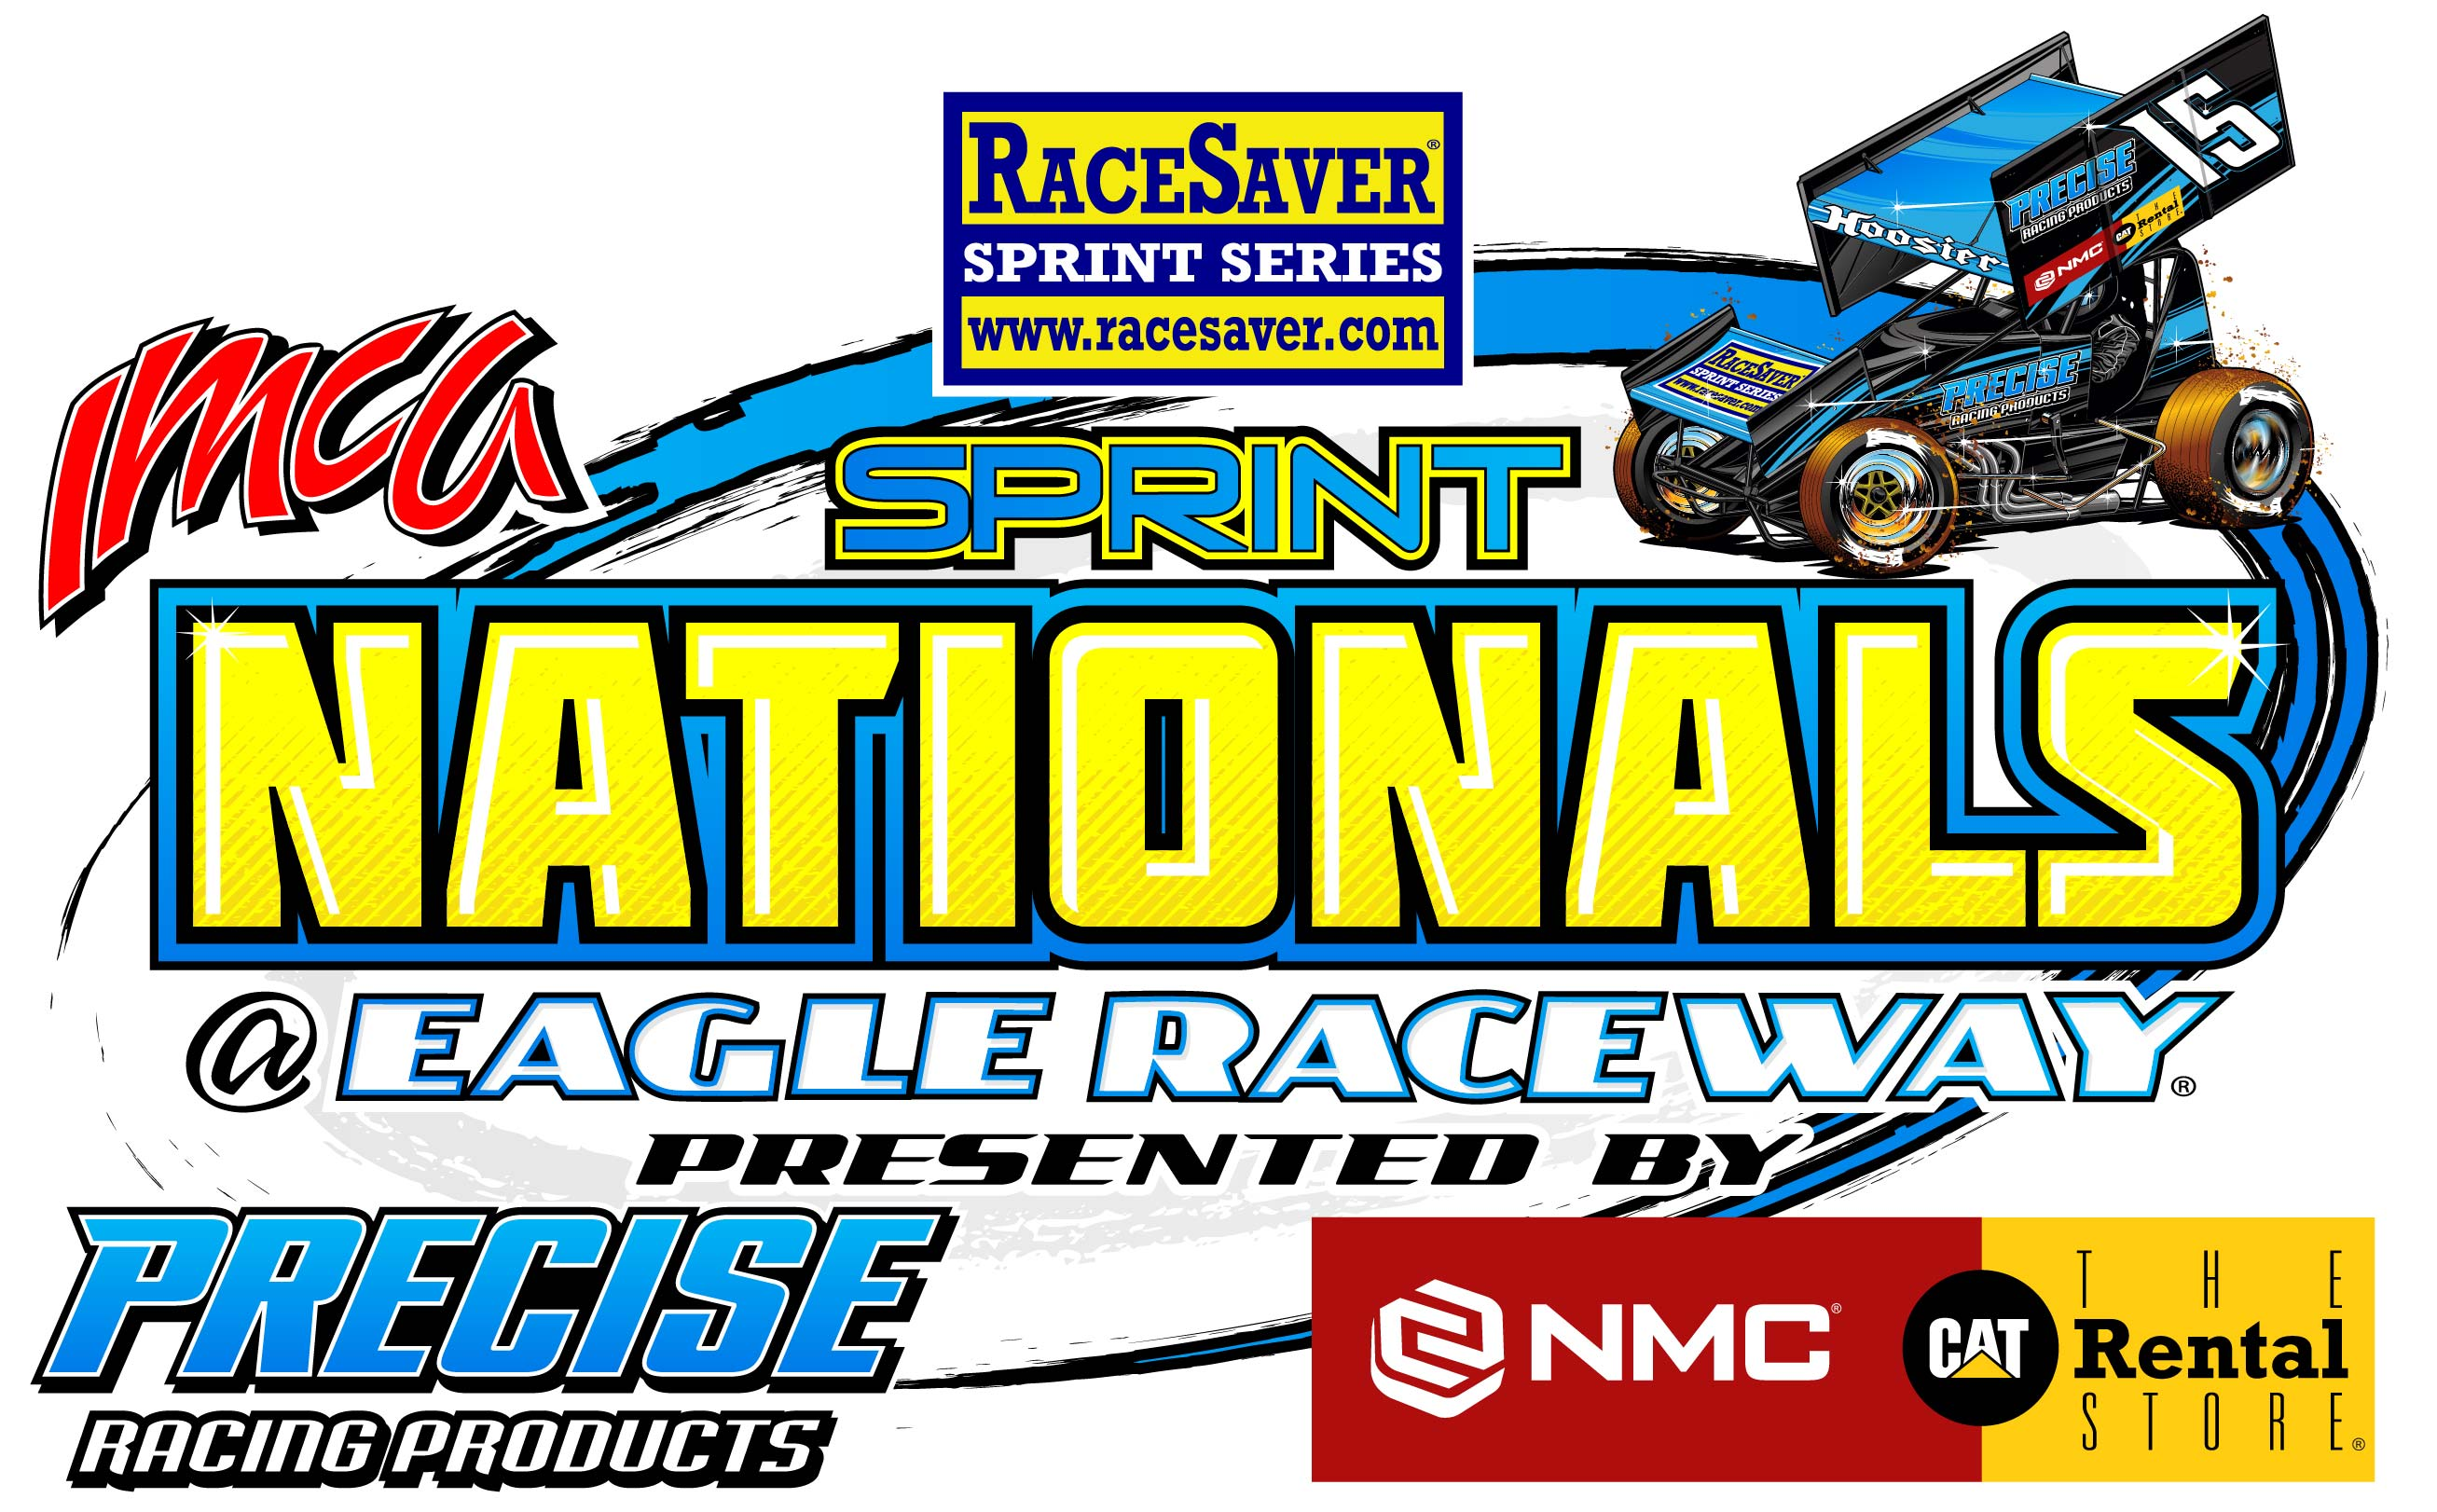 RaceSaver IMCA Sprint Nationals Registration Forms NOW Available